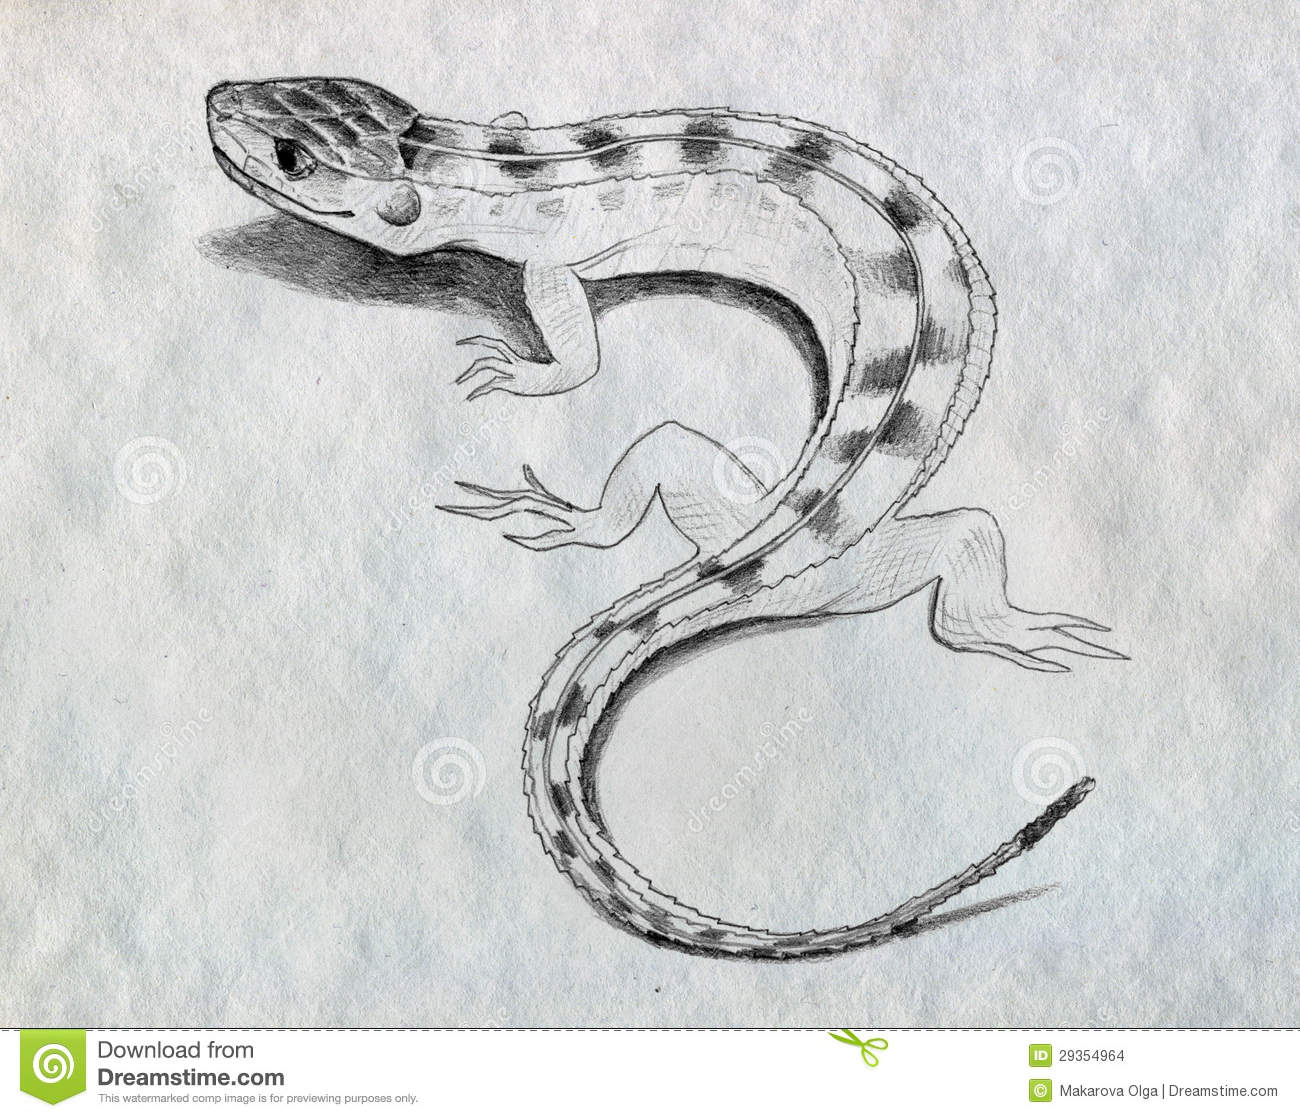 How To Draw A Lizard  wedrawanimalscom